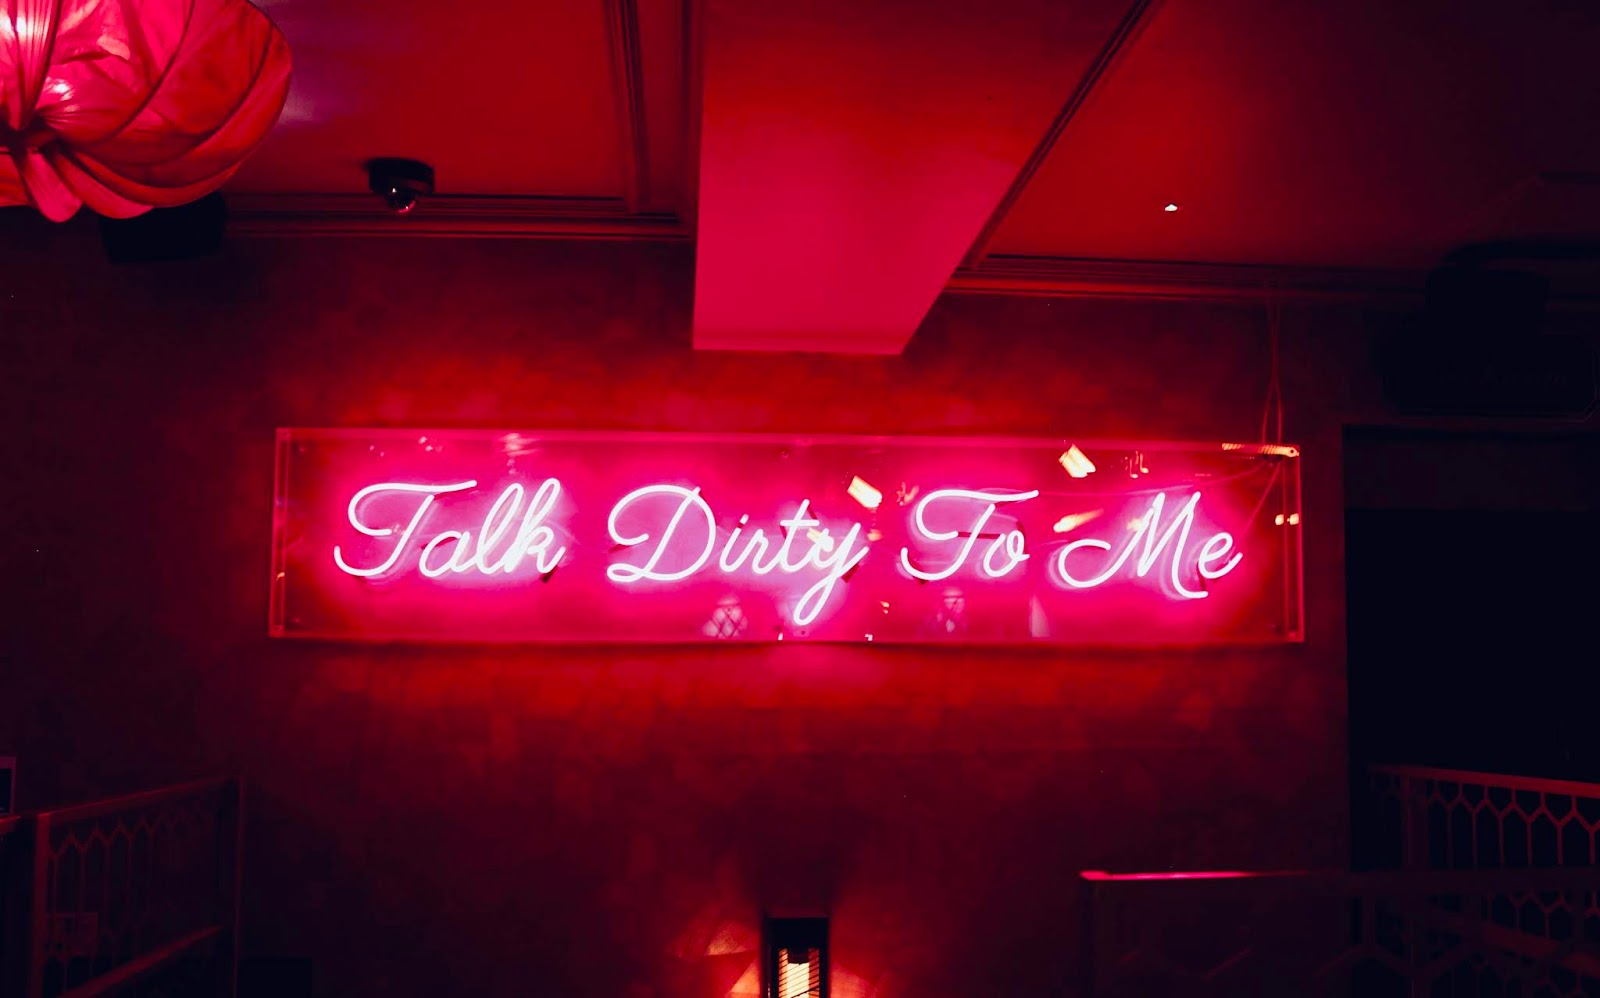 Neon 'talk dirty to me' sign in Dirty Martini